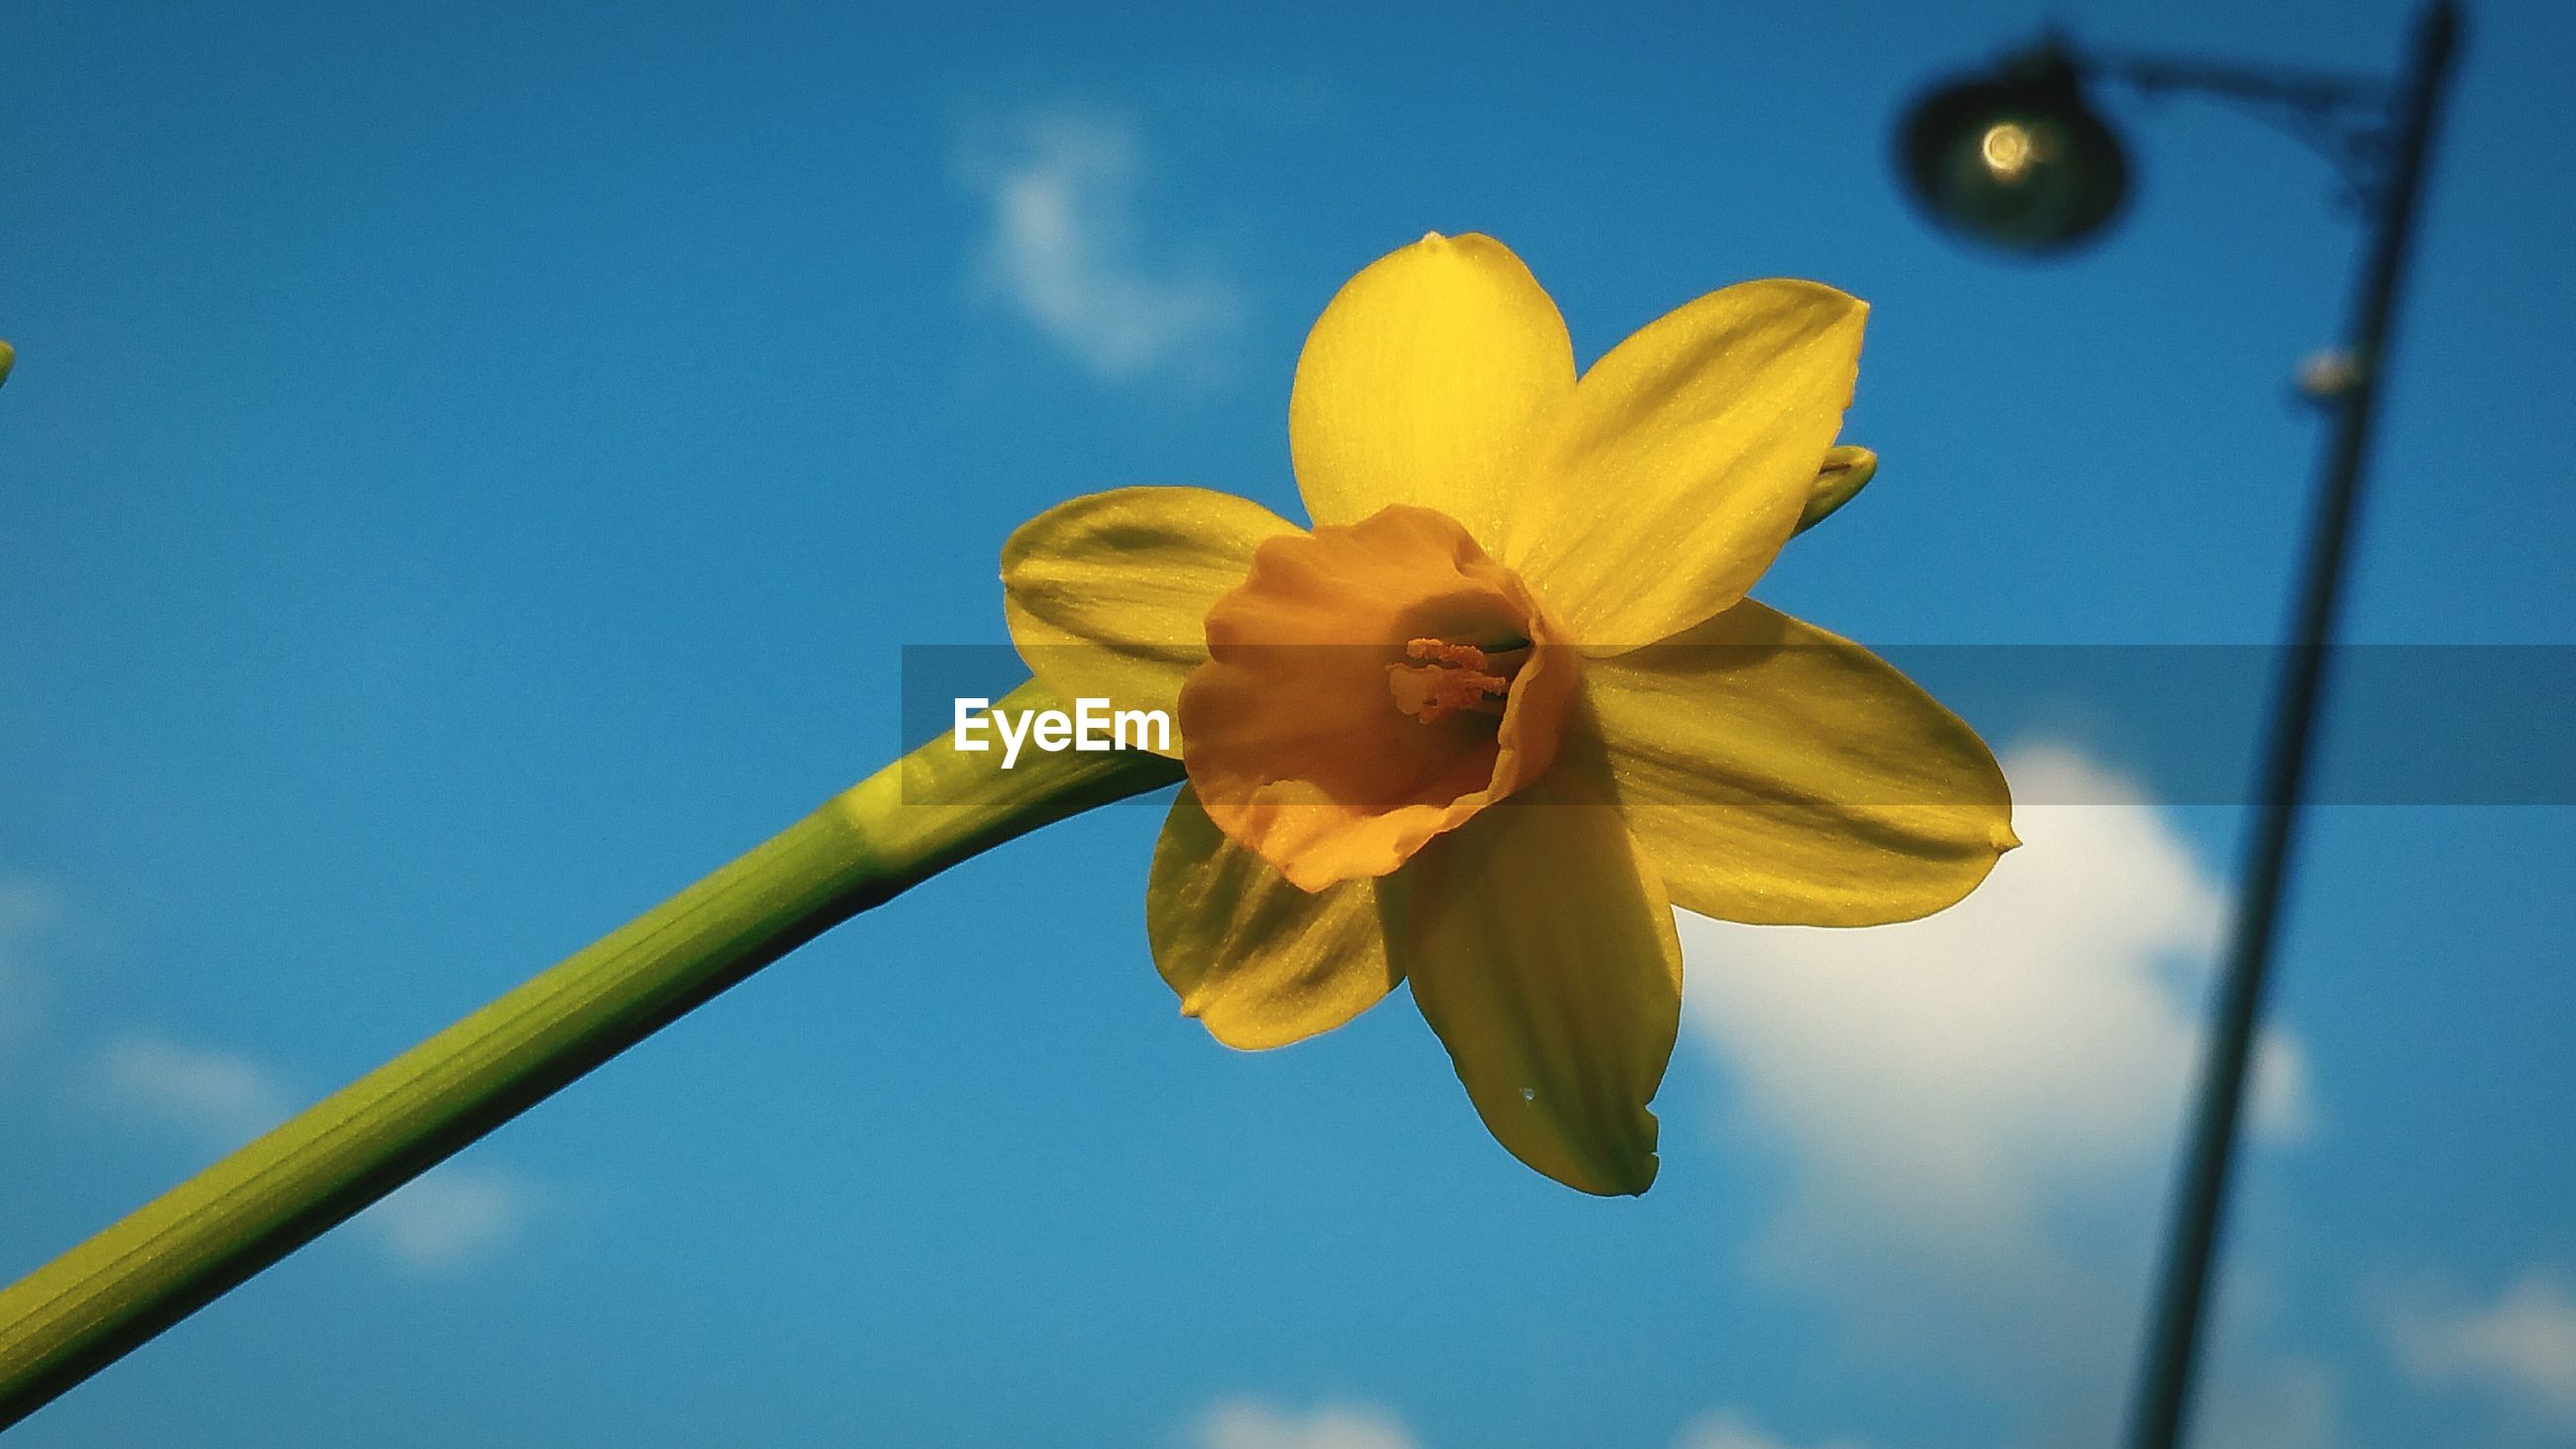 Low angle view of daffodil against blue sky